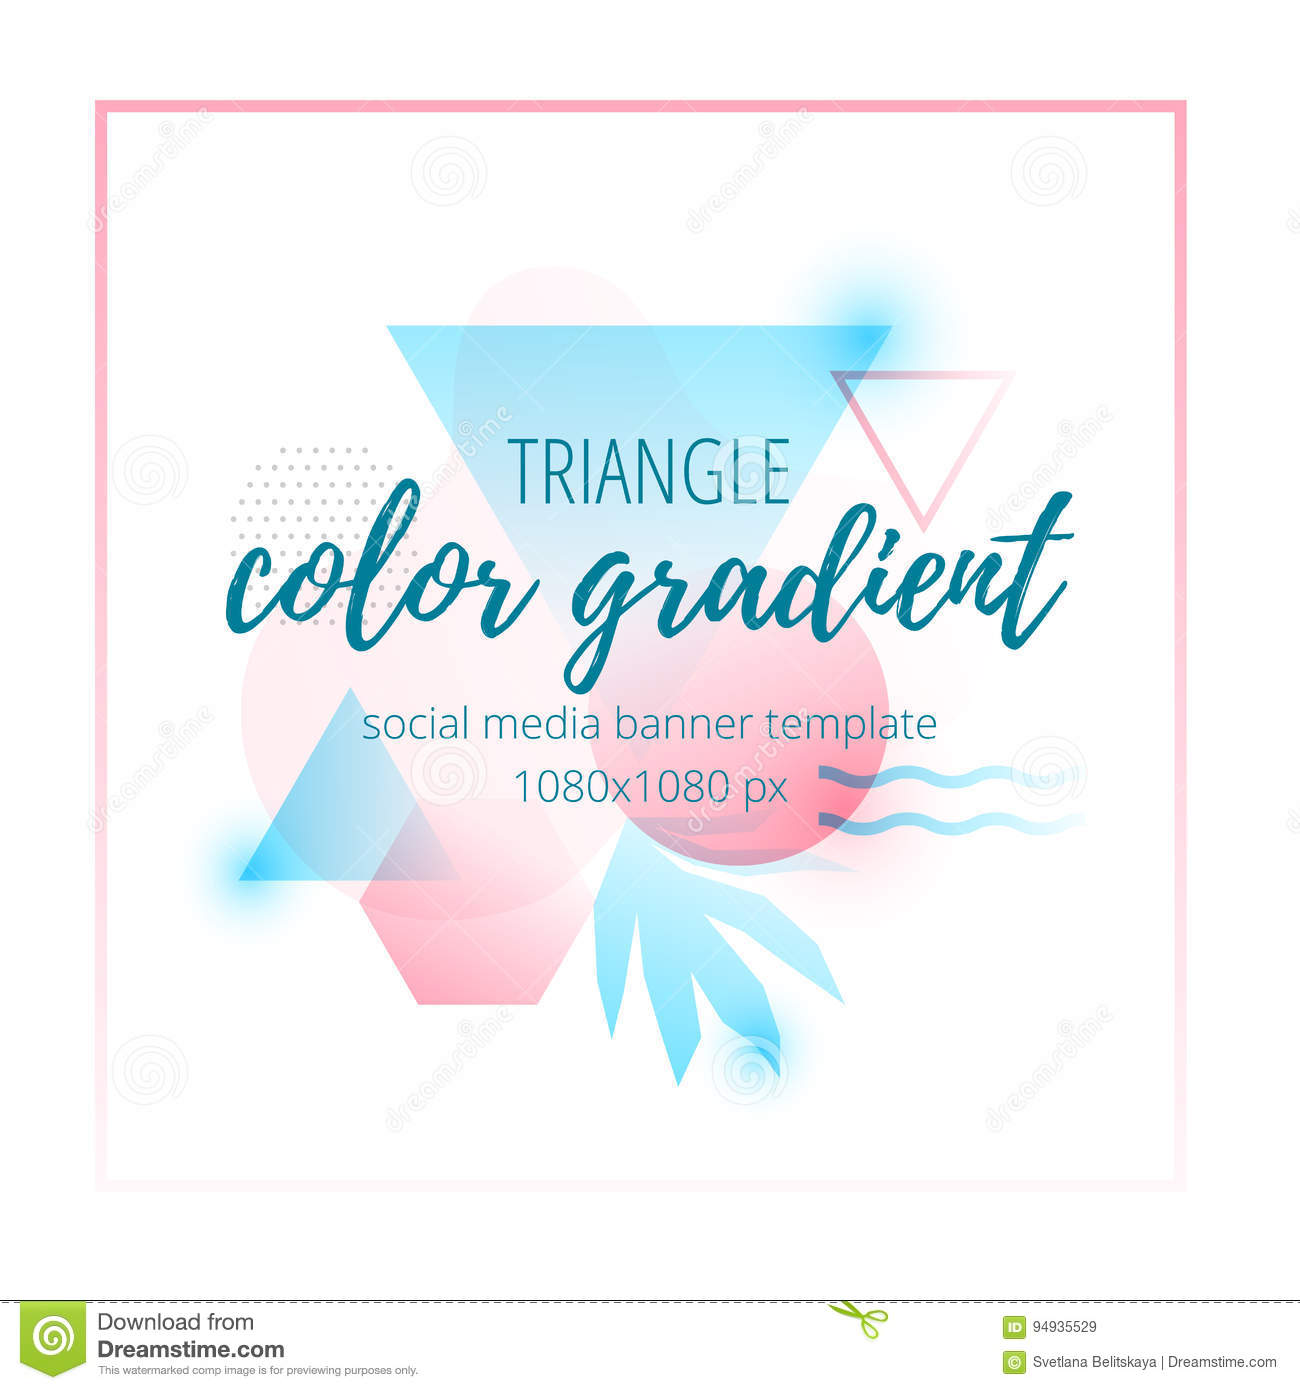 triangle color gradient social media banner template in